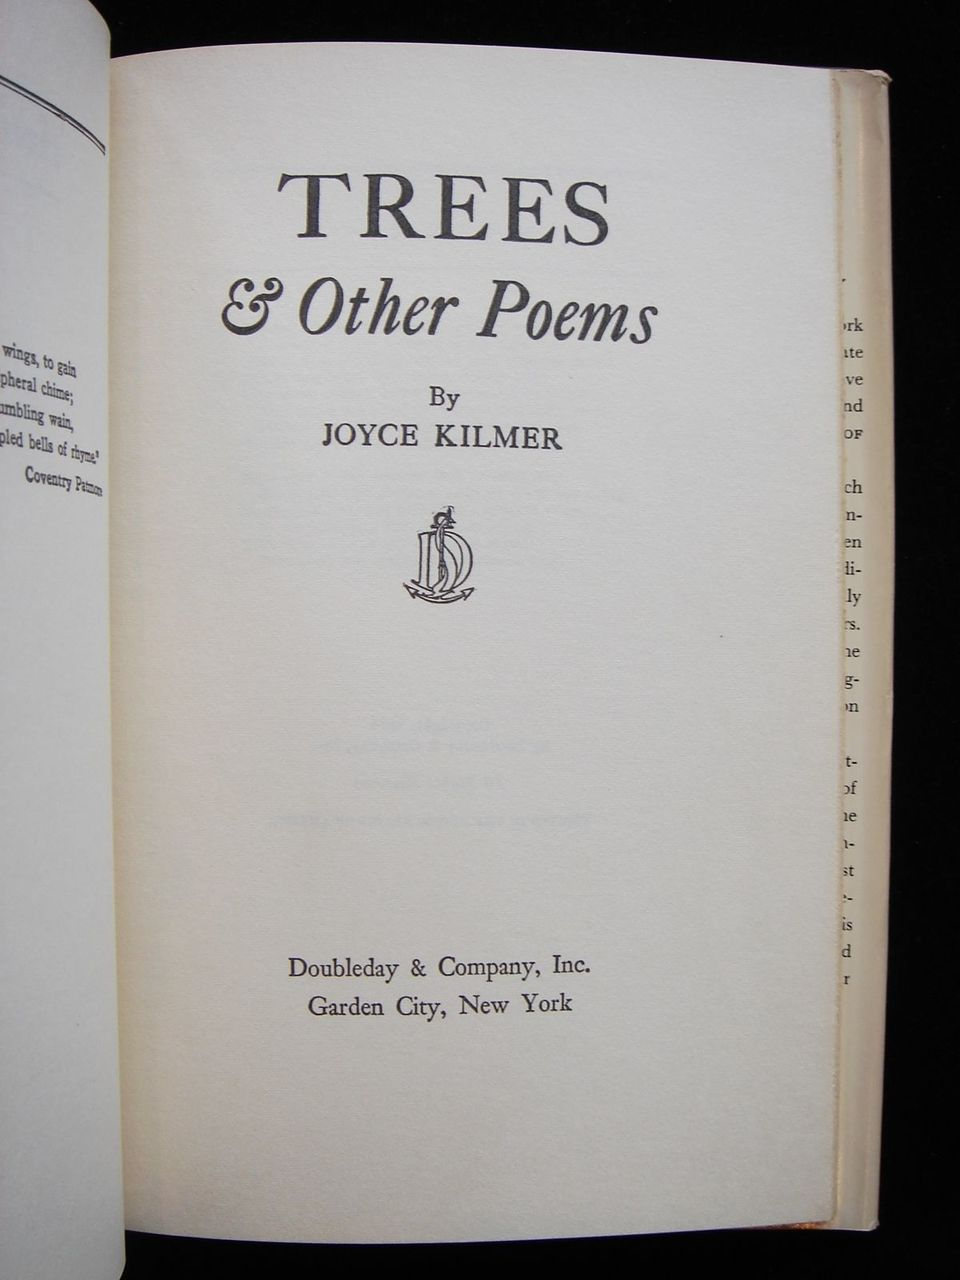 TREES & OTHER POEMS, by Joyce Kilmer - 1914